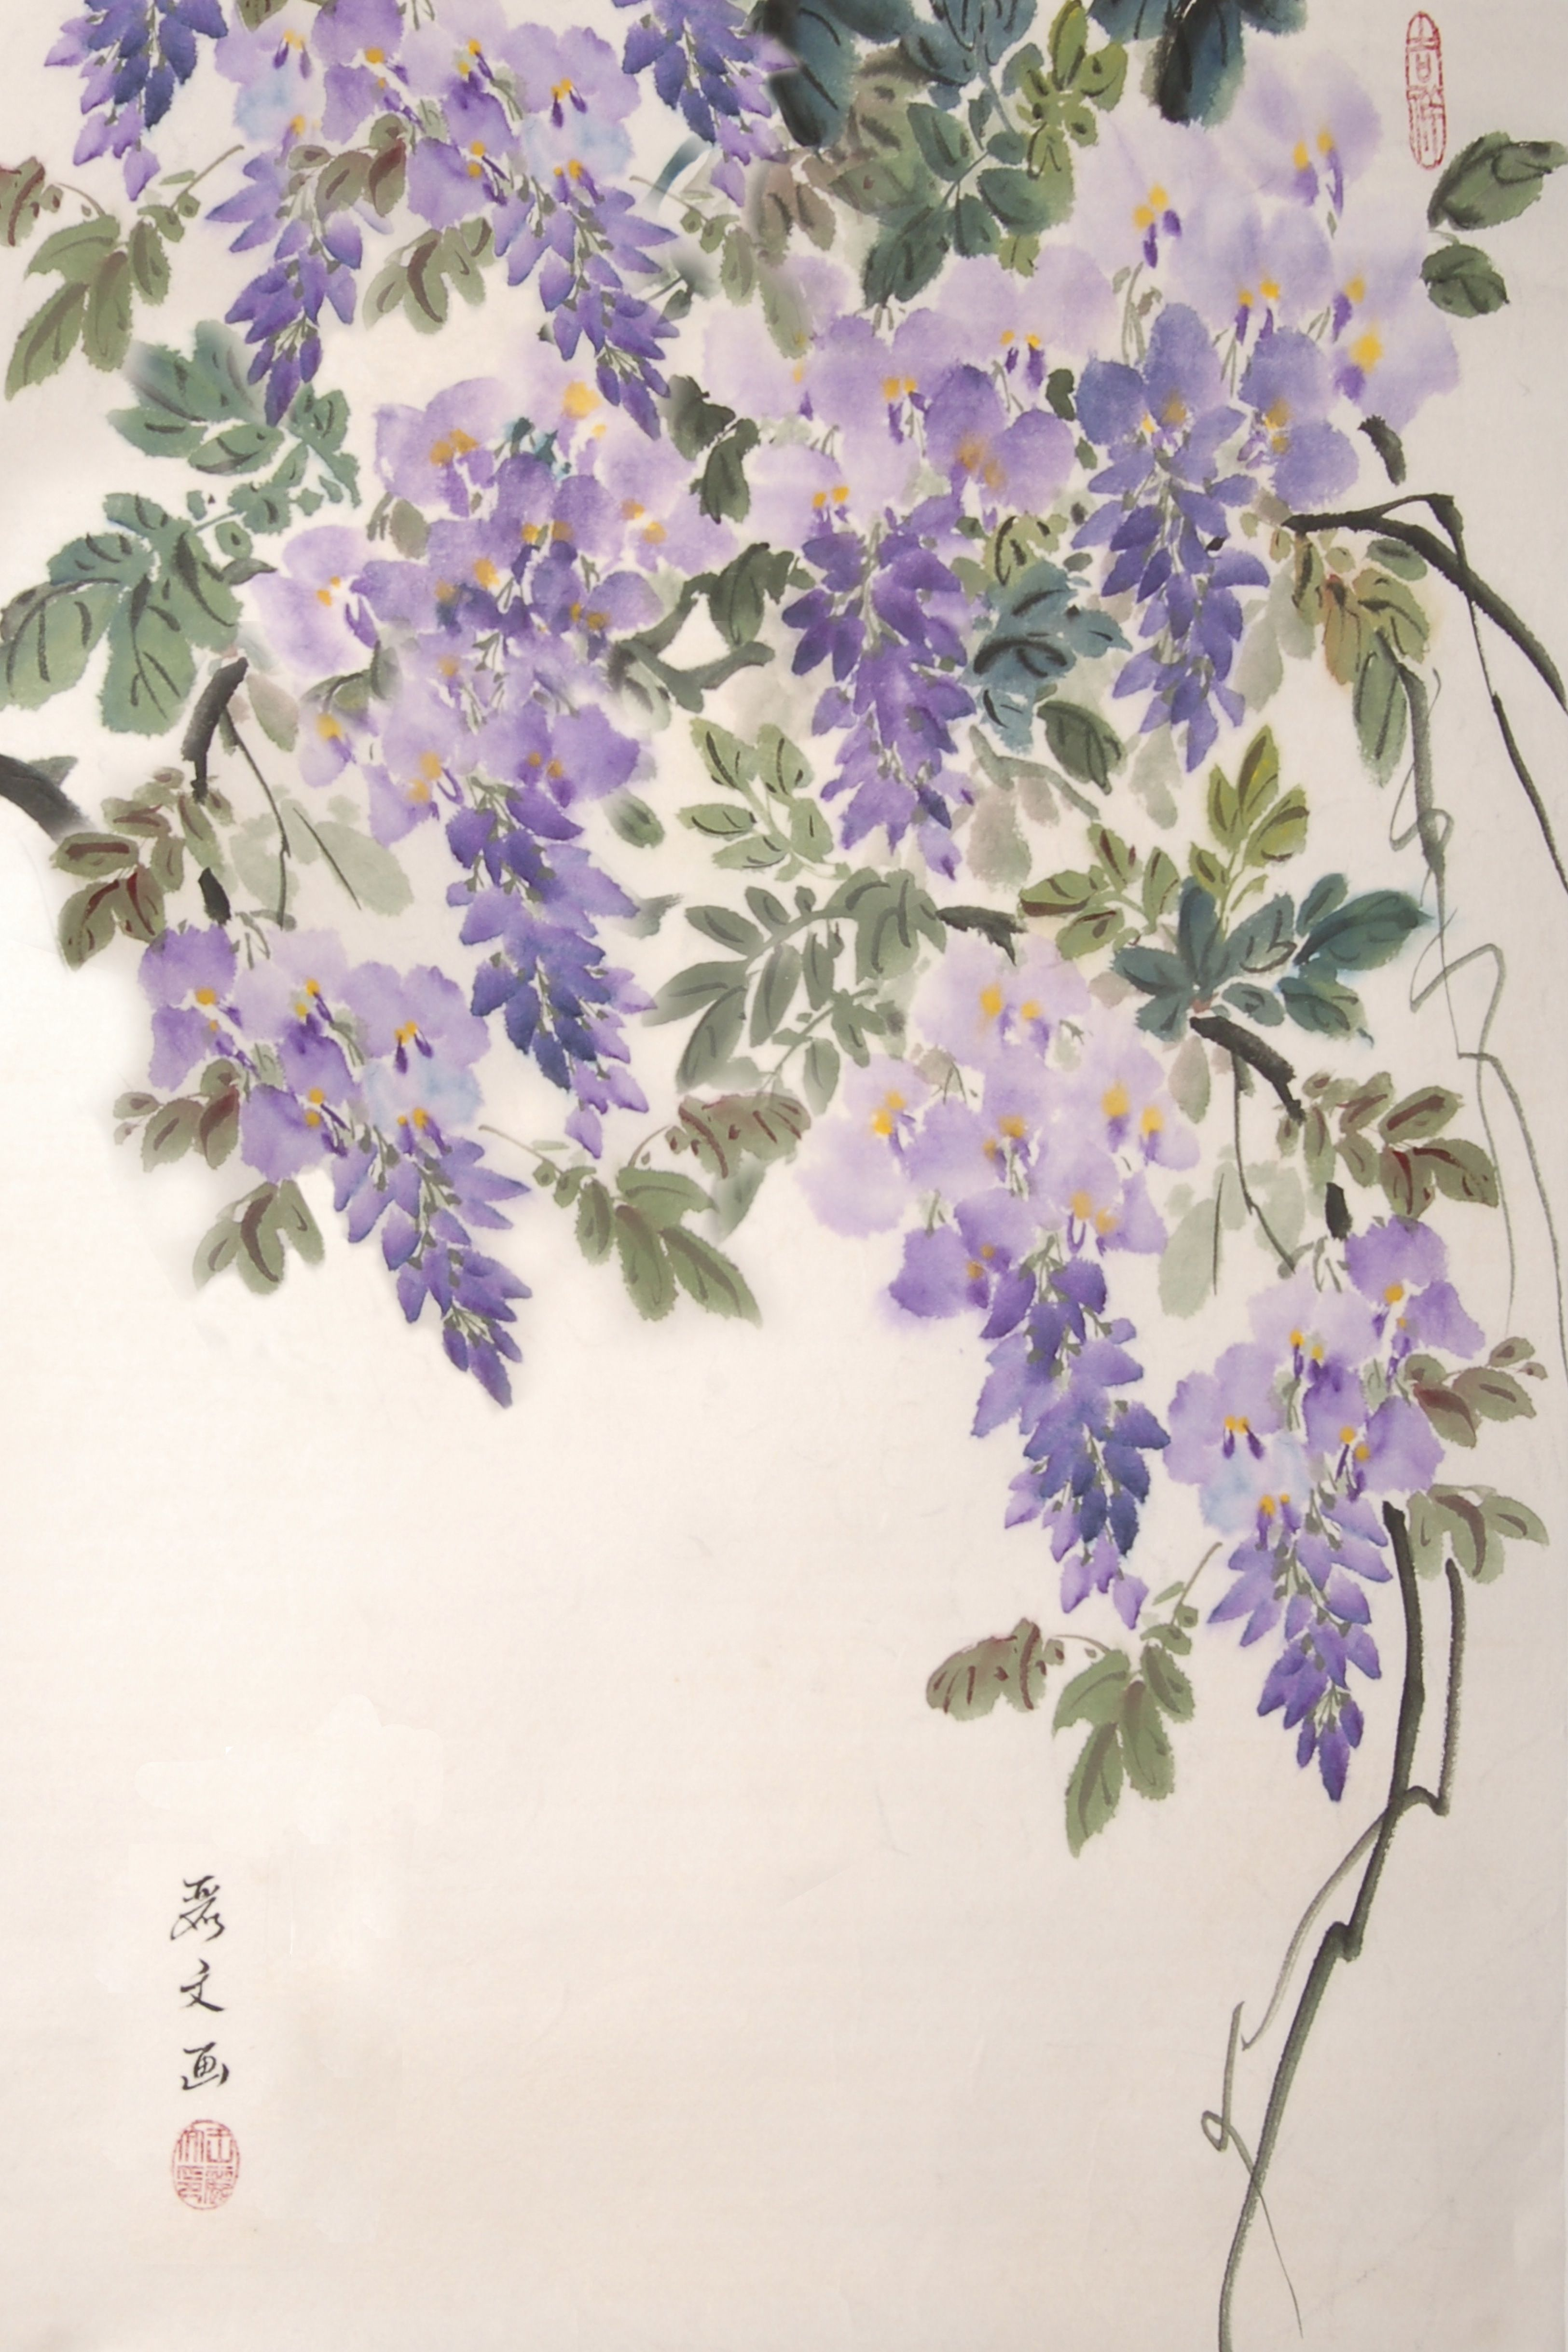 Challenge Yourself With A Different Style Of Painting In Our New Class Chinese Brush Painting Wisteria By Inst Flower Painting Japanese Painting Flower Art